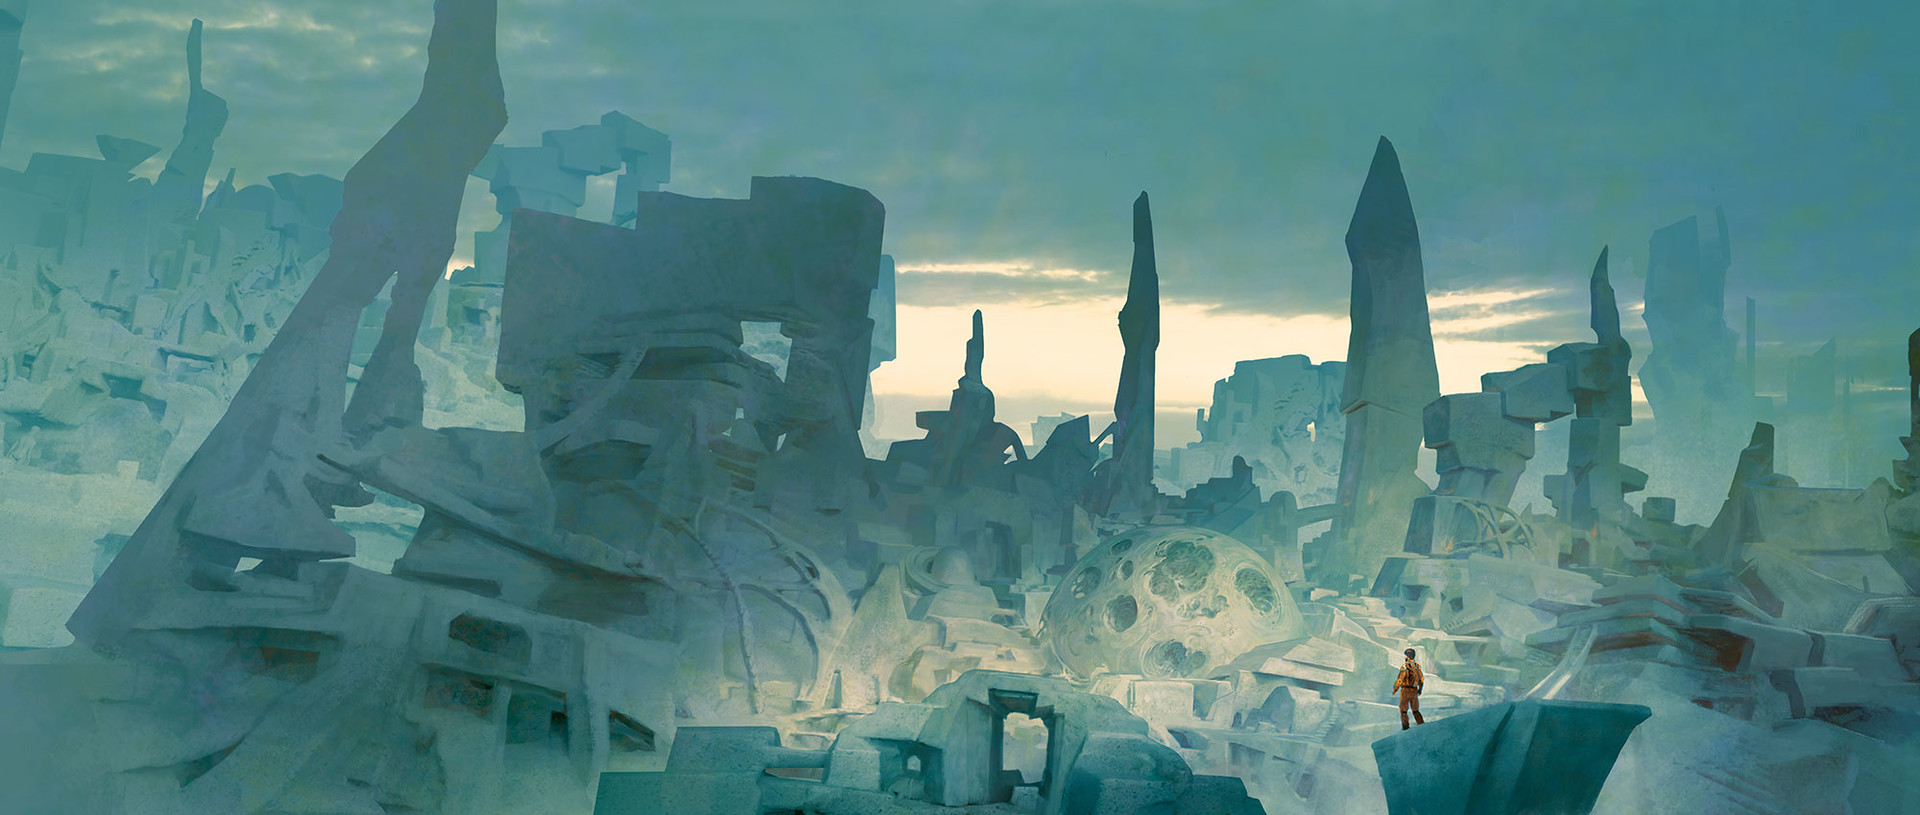 Marc Simonetti Digital Painting Stone city